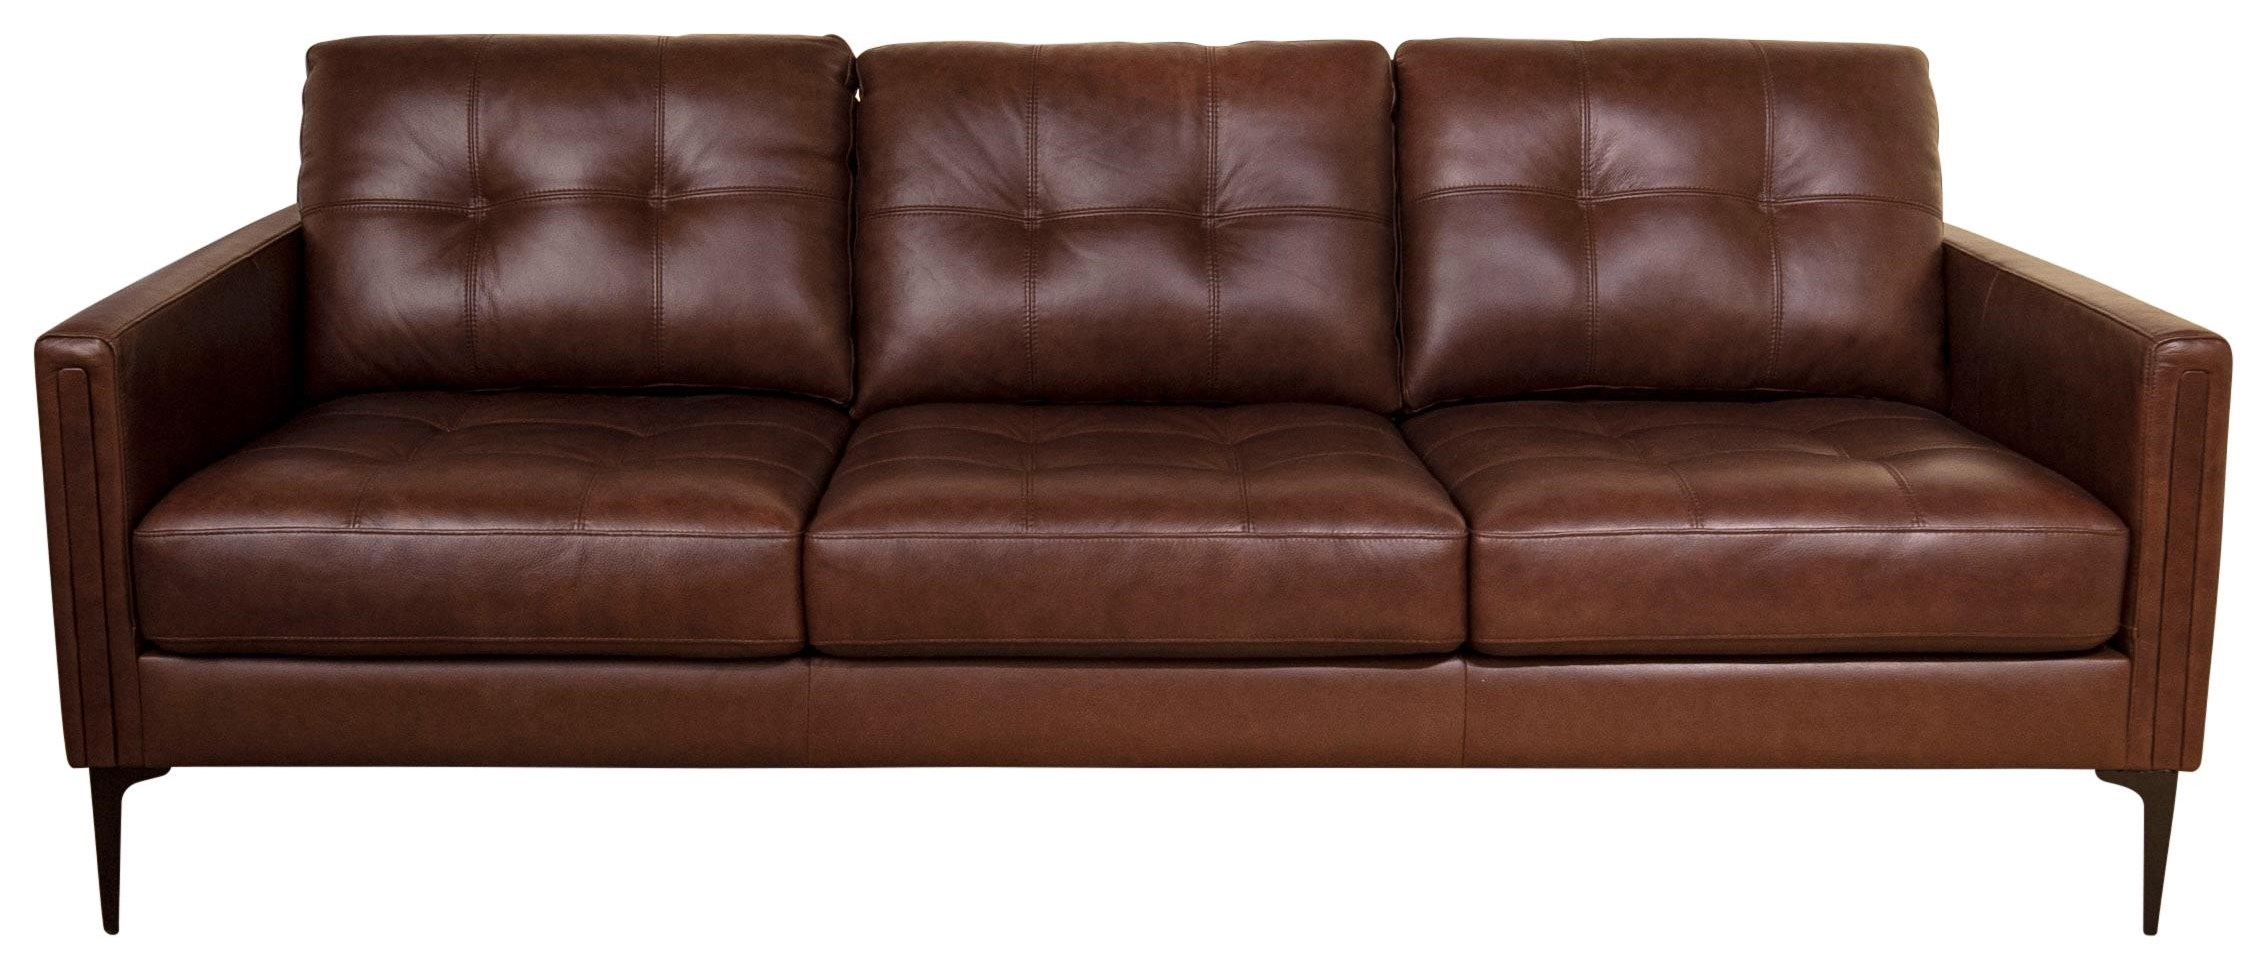 Murphey Murphey Leather Match Sofa by Abbyson at Morris Home